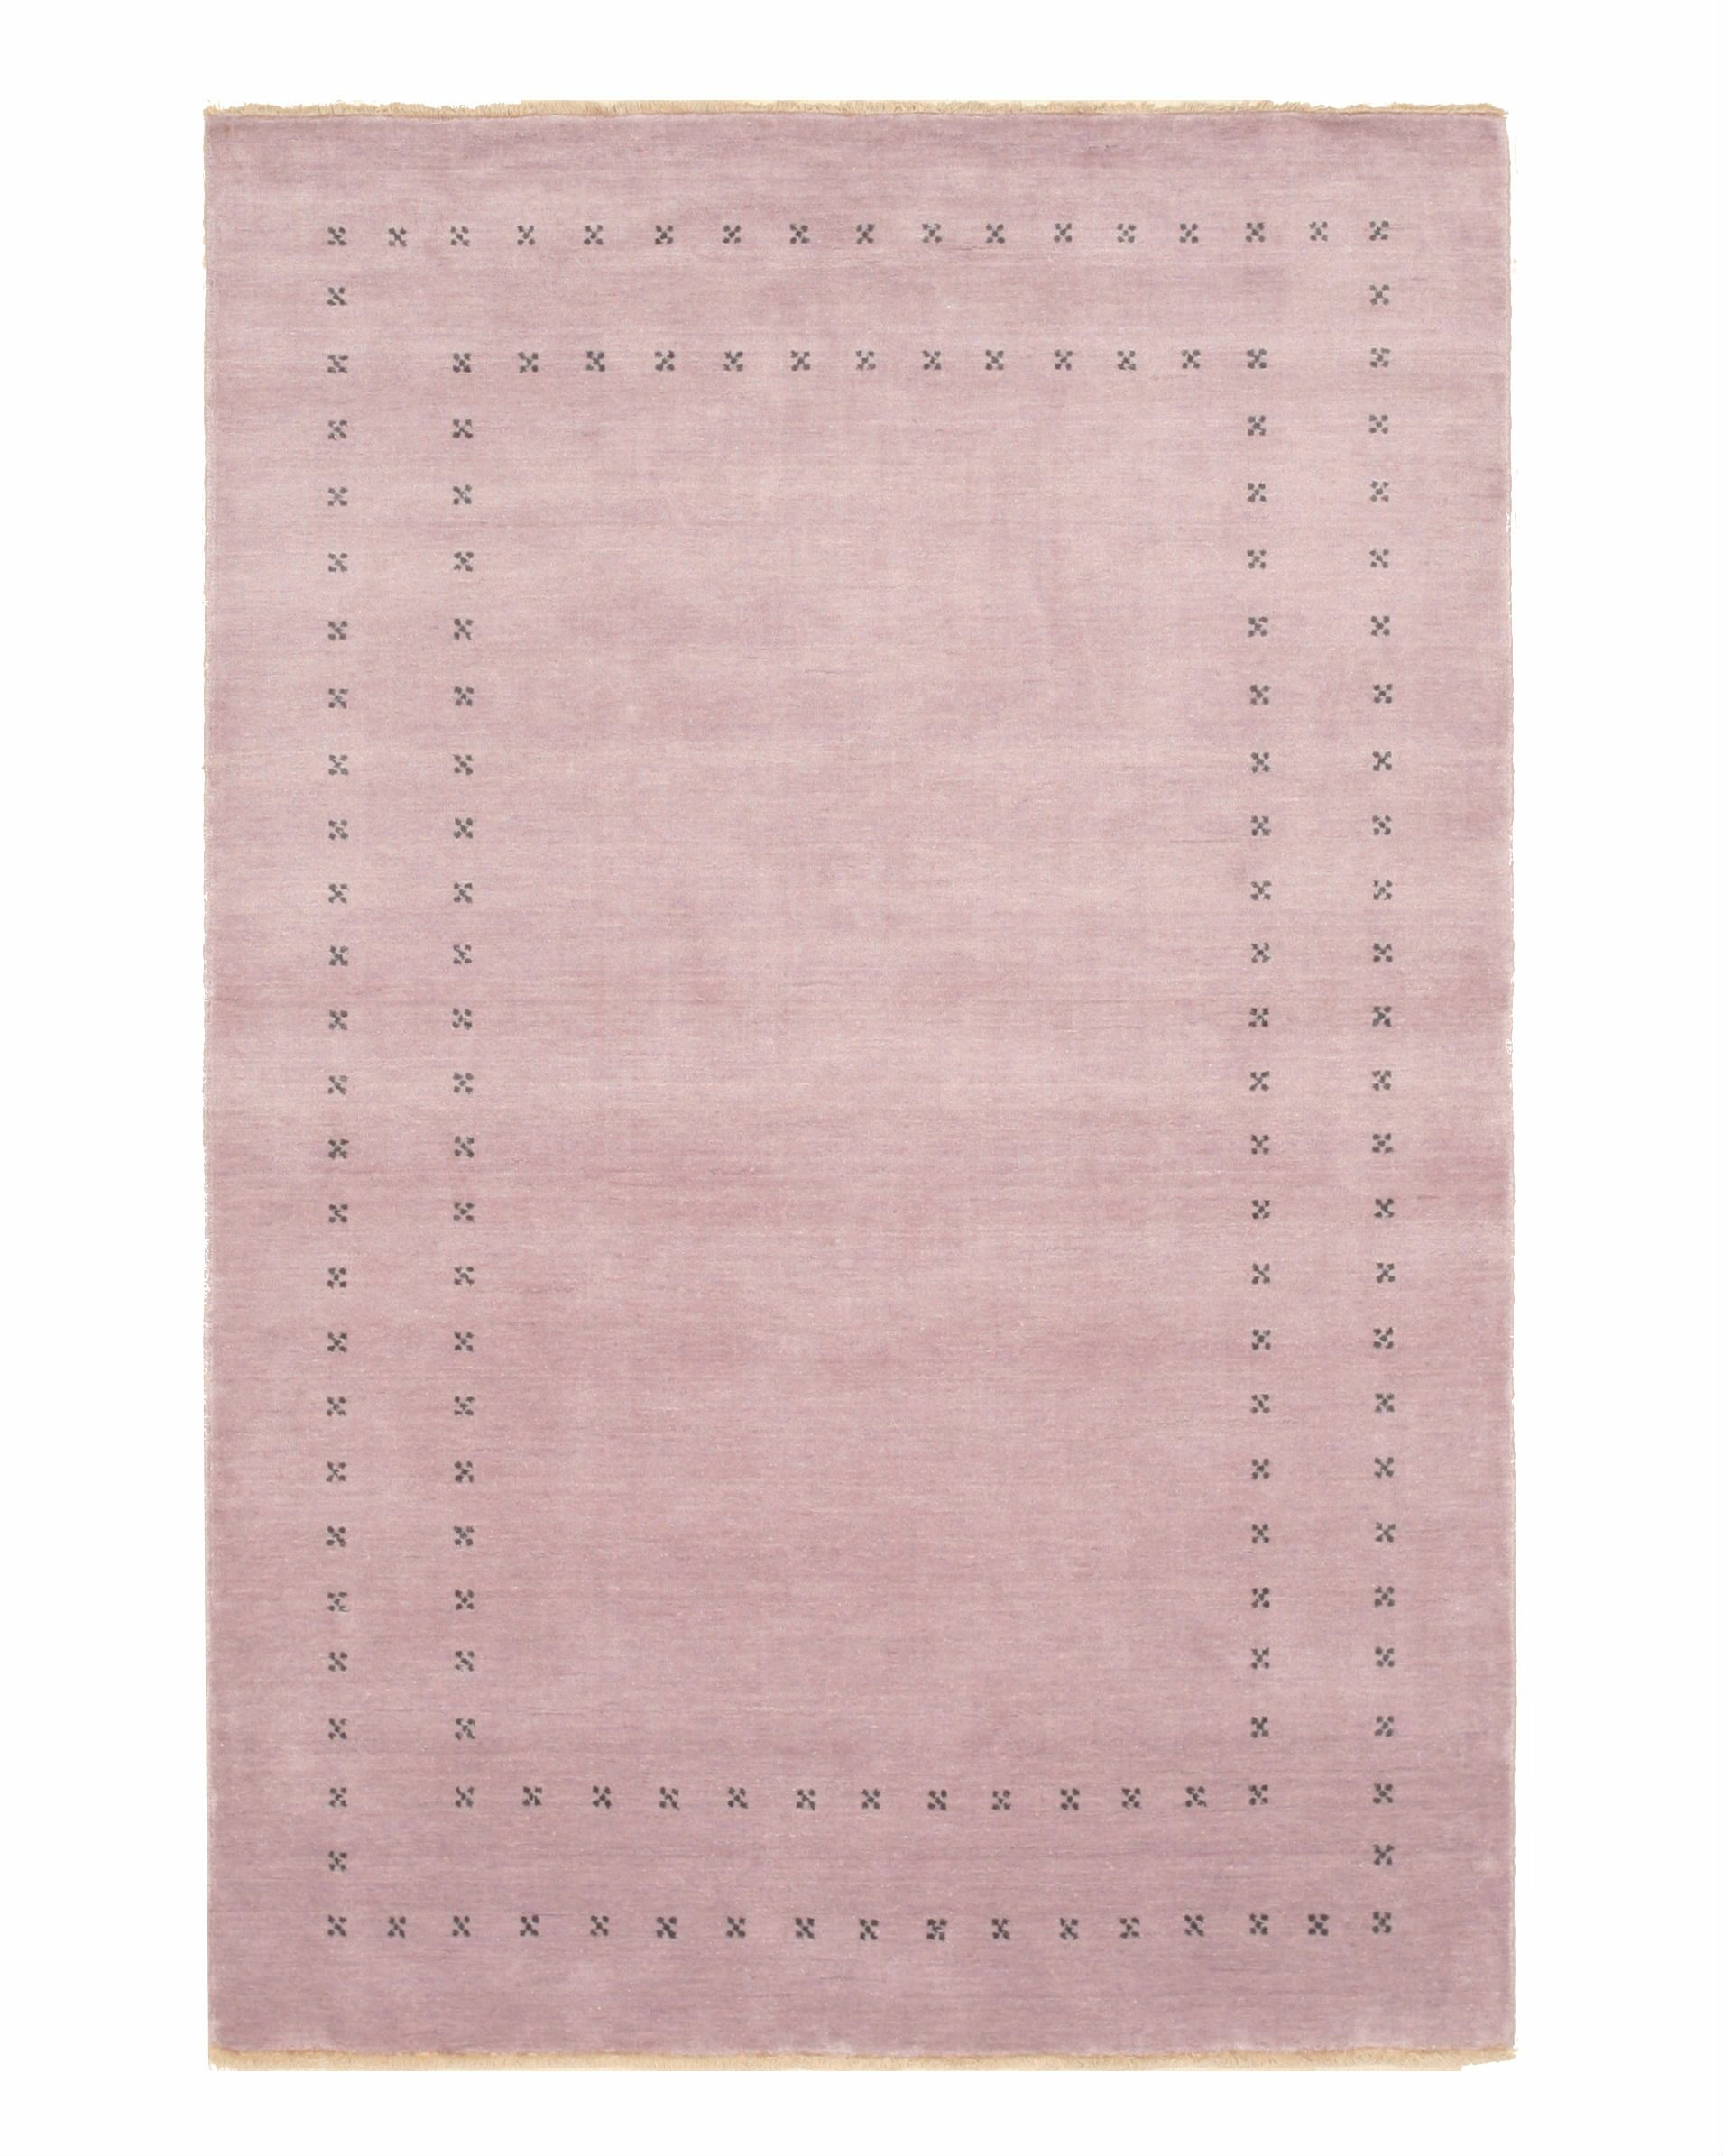 Dreher Transitional Solid Hand-Woven Wool Purple Area Rug Rug Size: Rectangle 8' x 10'